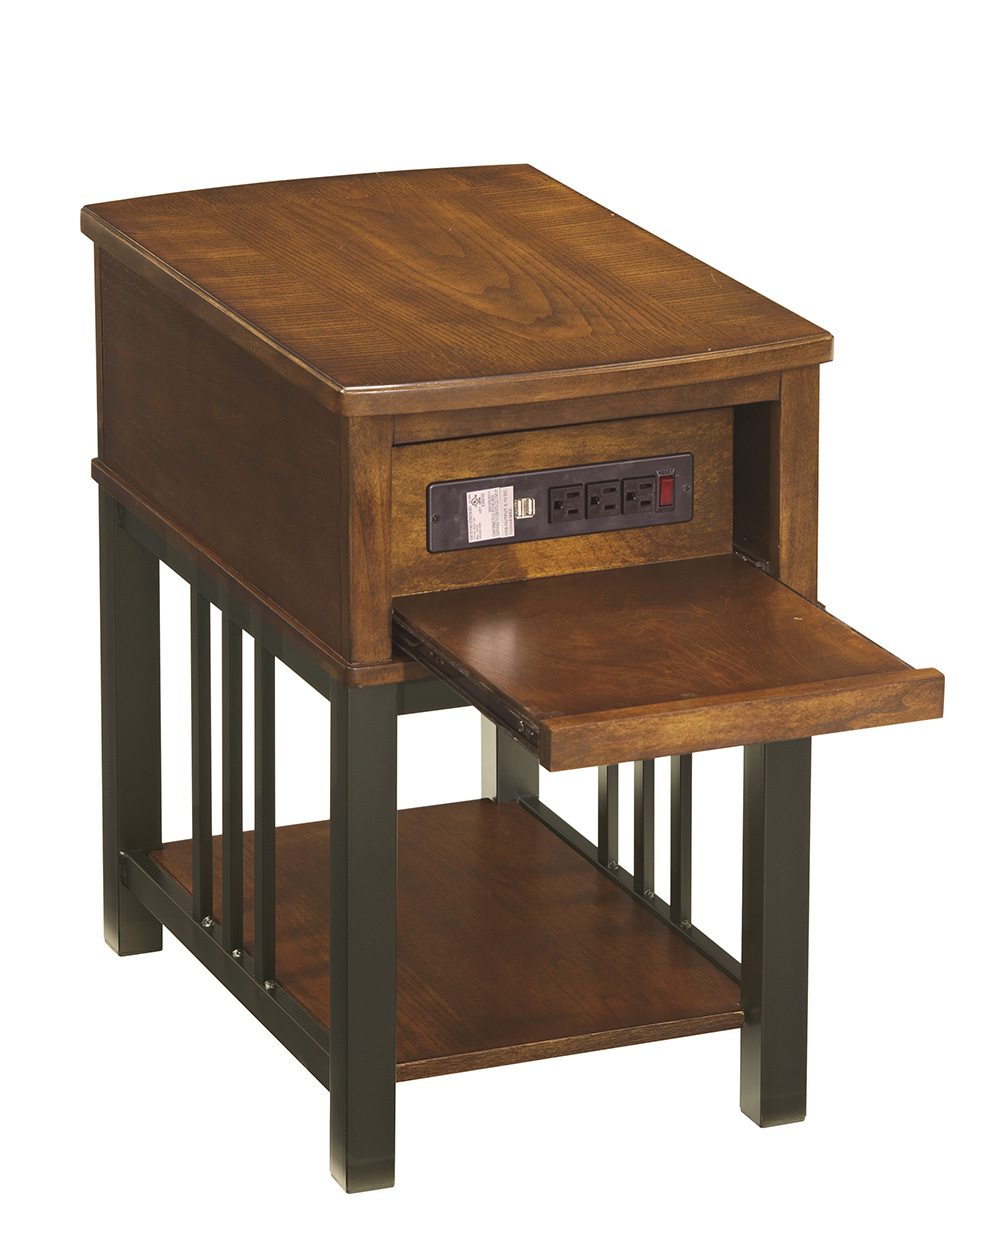 the terrific beautiful end table with built power strip city liquidators furniture home ashley jaysteen side broyhill usb round dining and chairs coastal tables drum modern nest